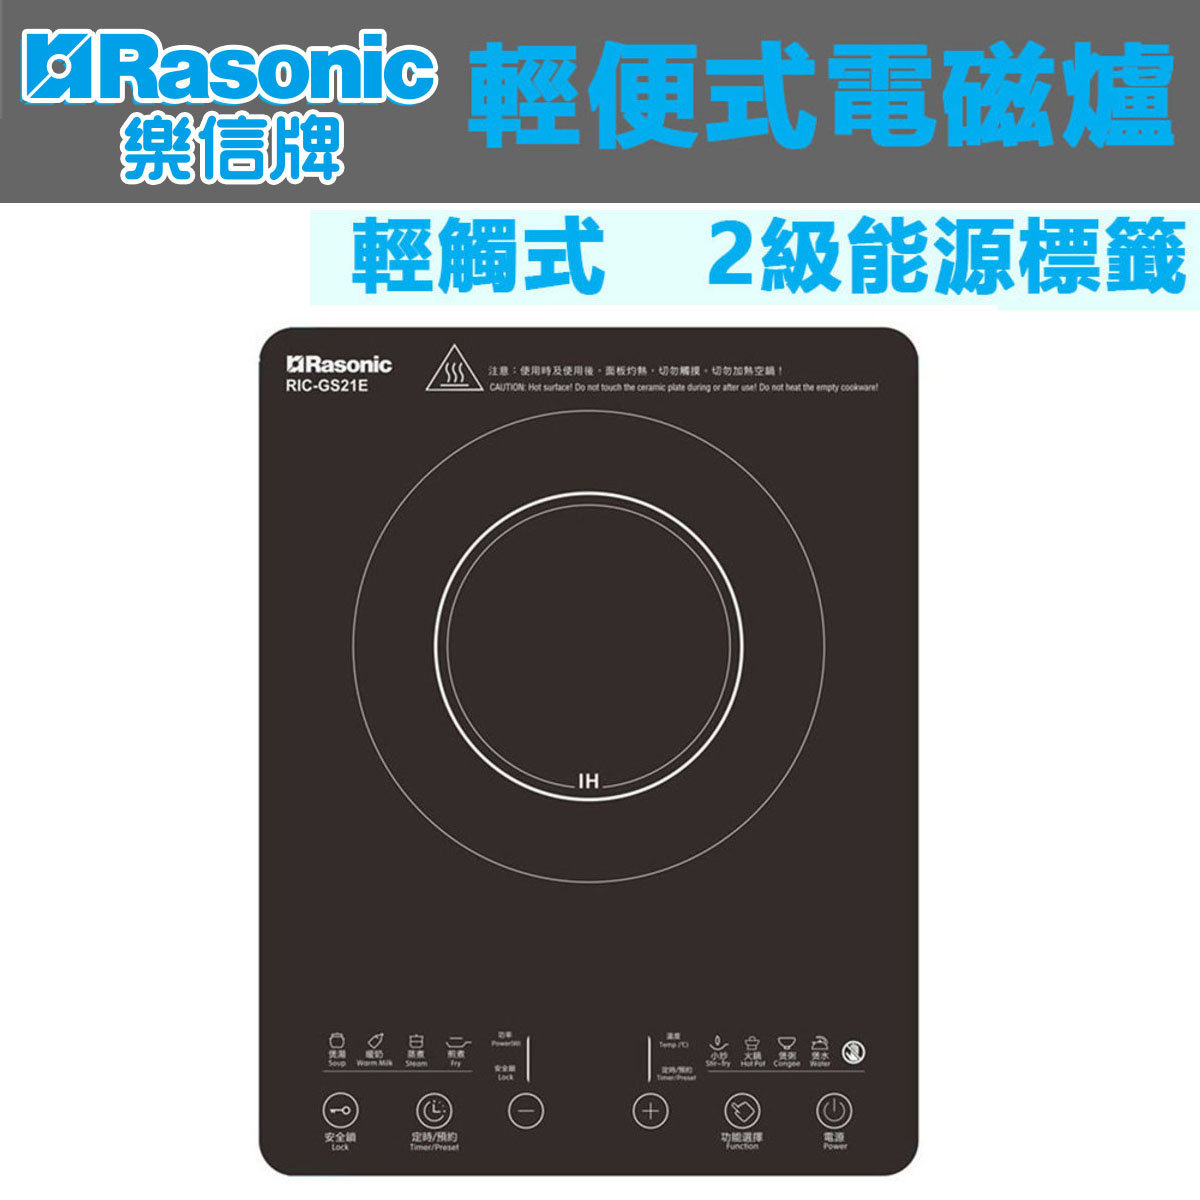 Compact Induction Cooker (13A/Touch Panel/Simple Control) RIC-GS21E